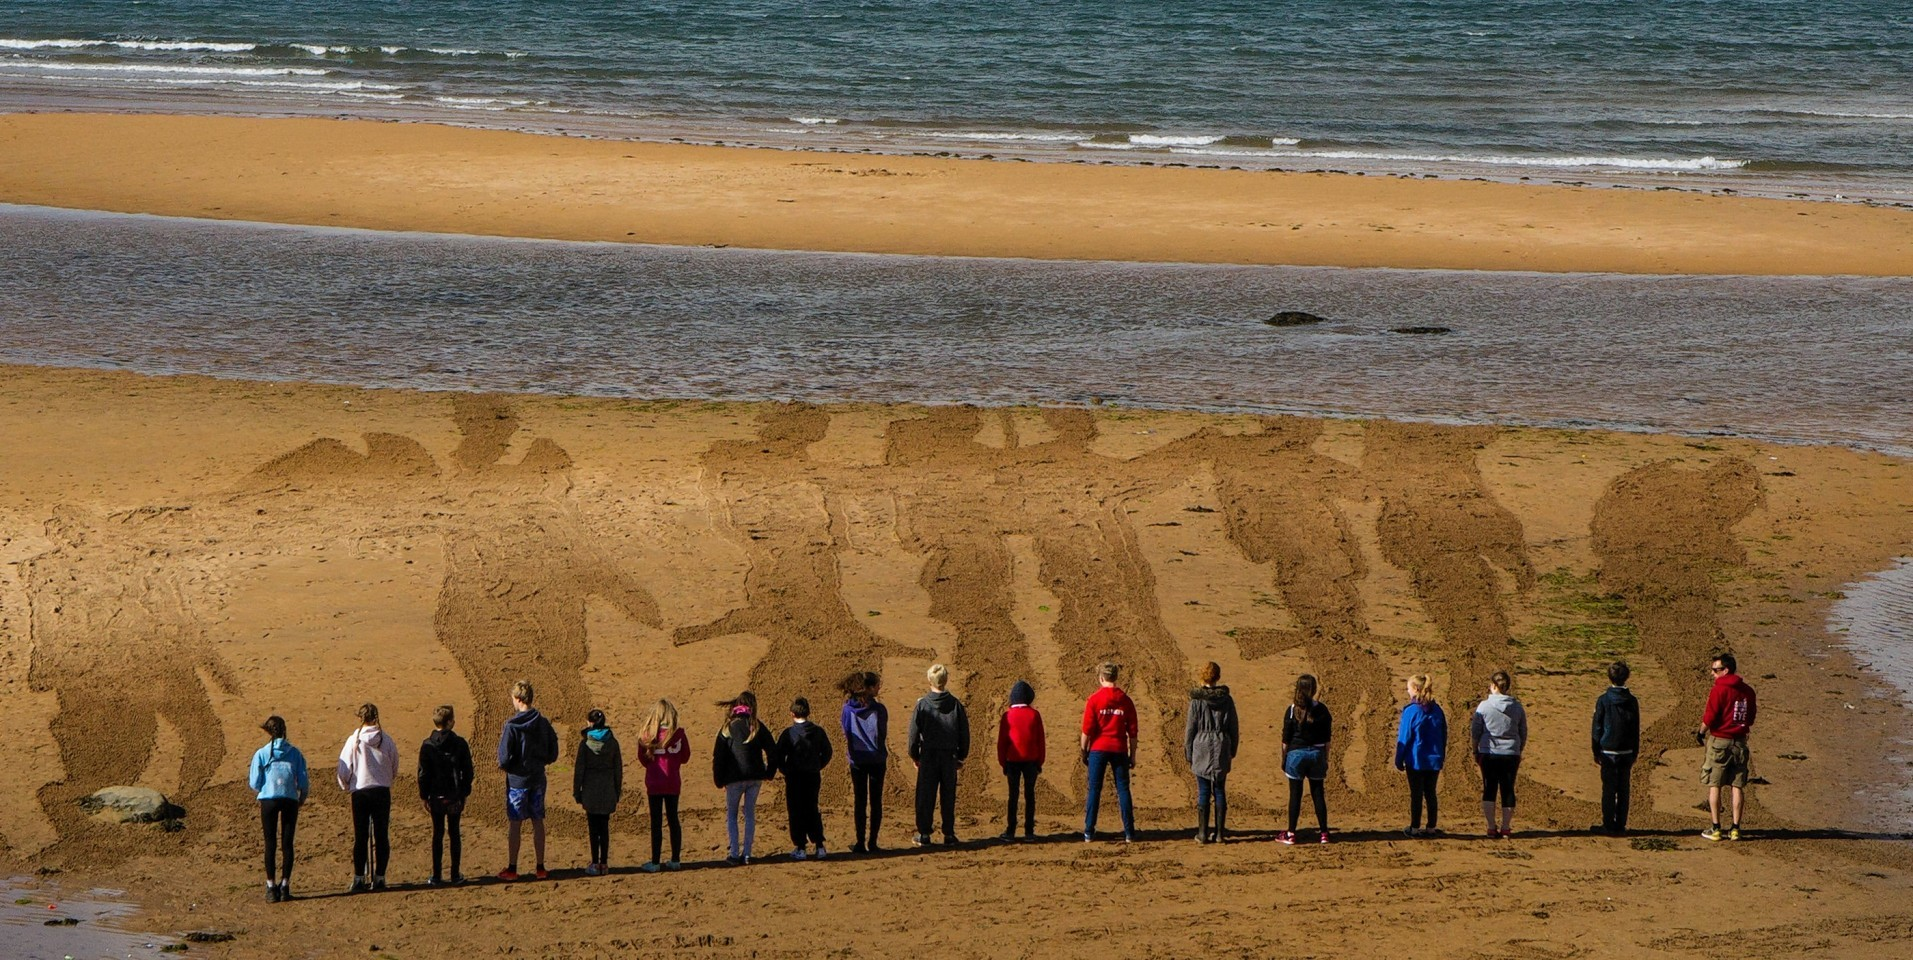 """Sand drawing """"Somme Soldiers"""" by Sand In Their Eye, on the beach in Elie, Fife"""